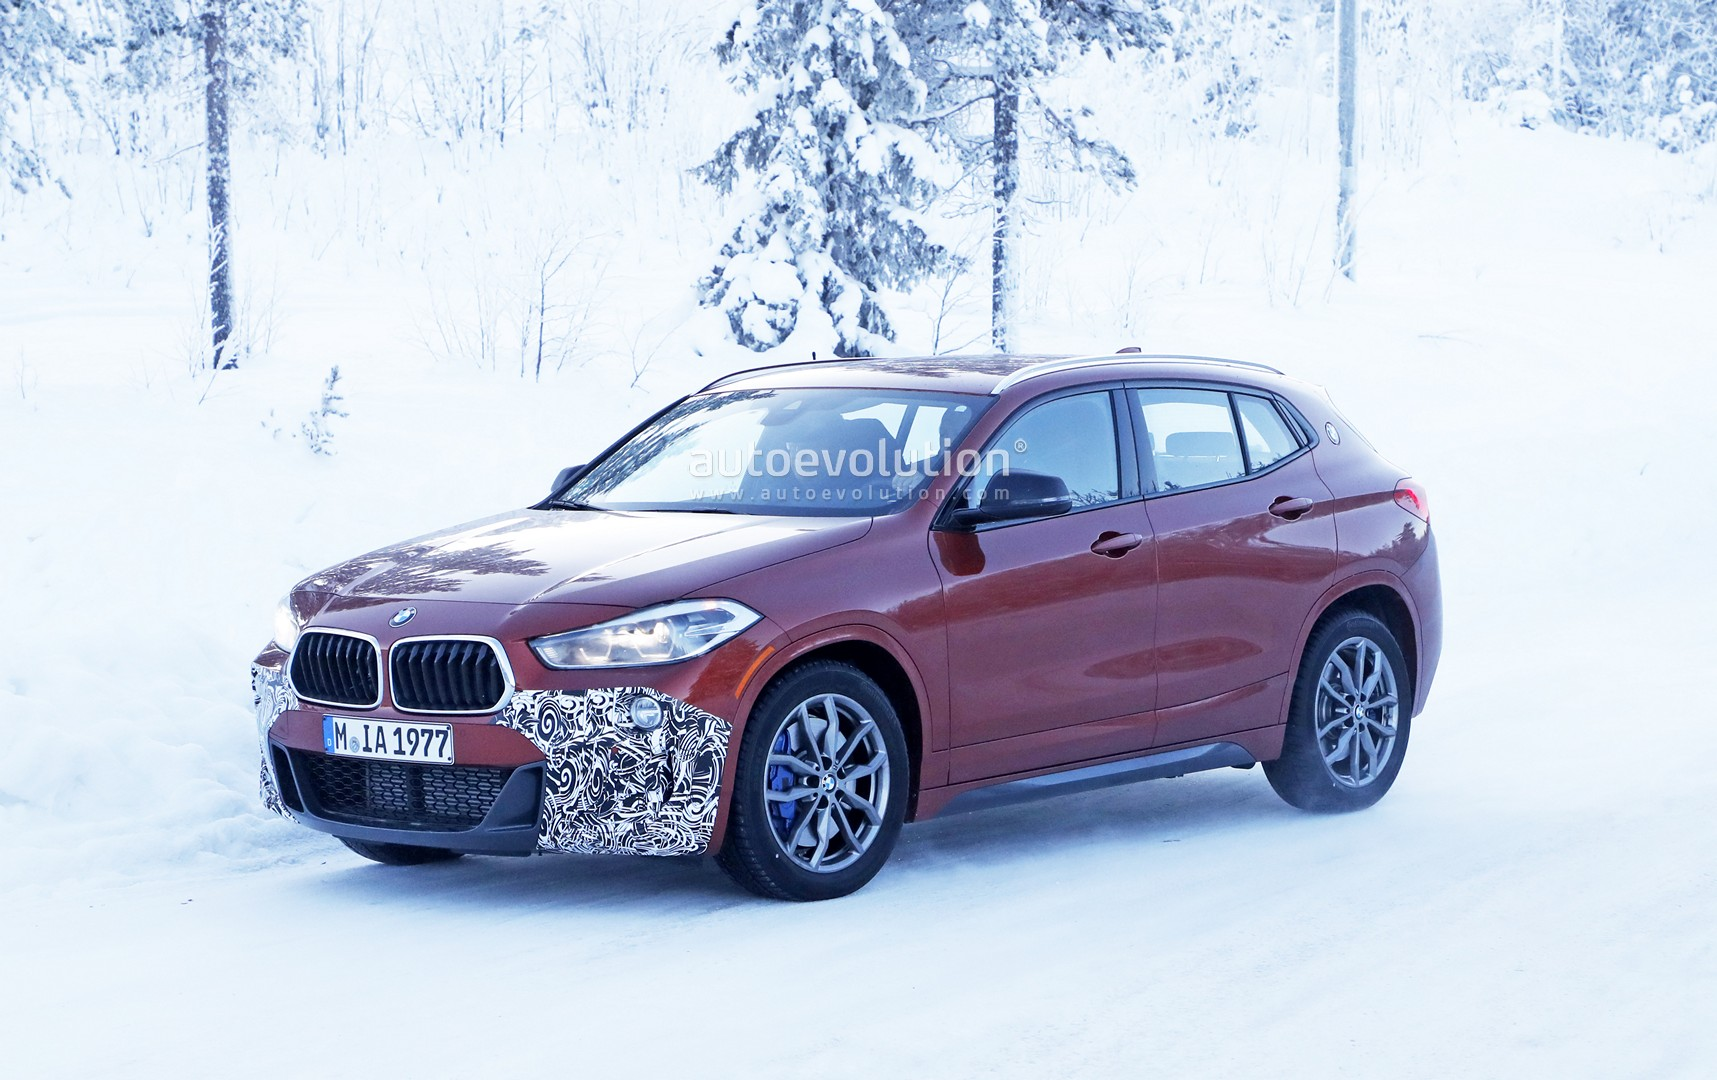 bmw x2 m35i spied winter testing the 300 hp suv that looks like a hatch autoevolution. Black Bedroom Furniture Sets. Home Design Ideas